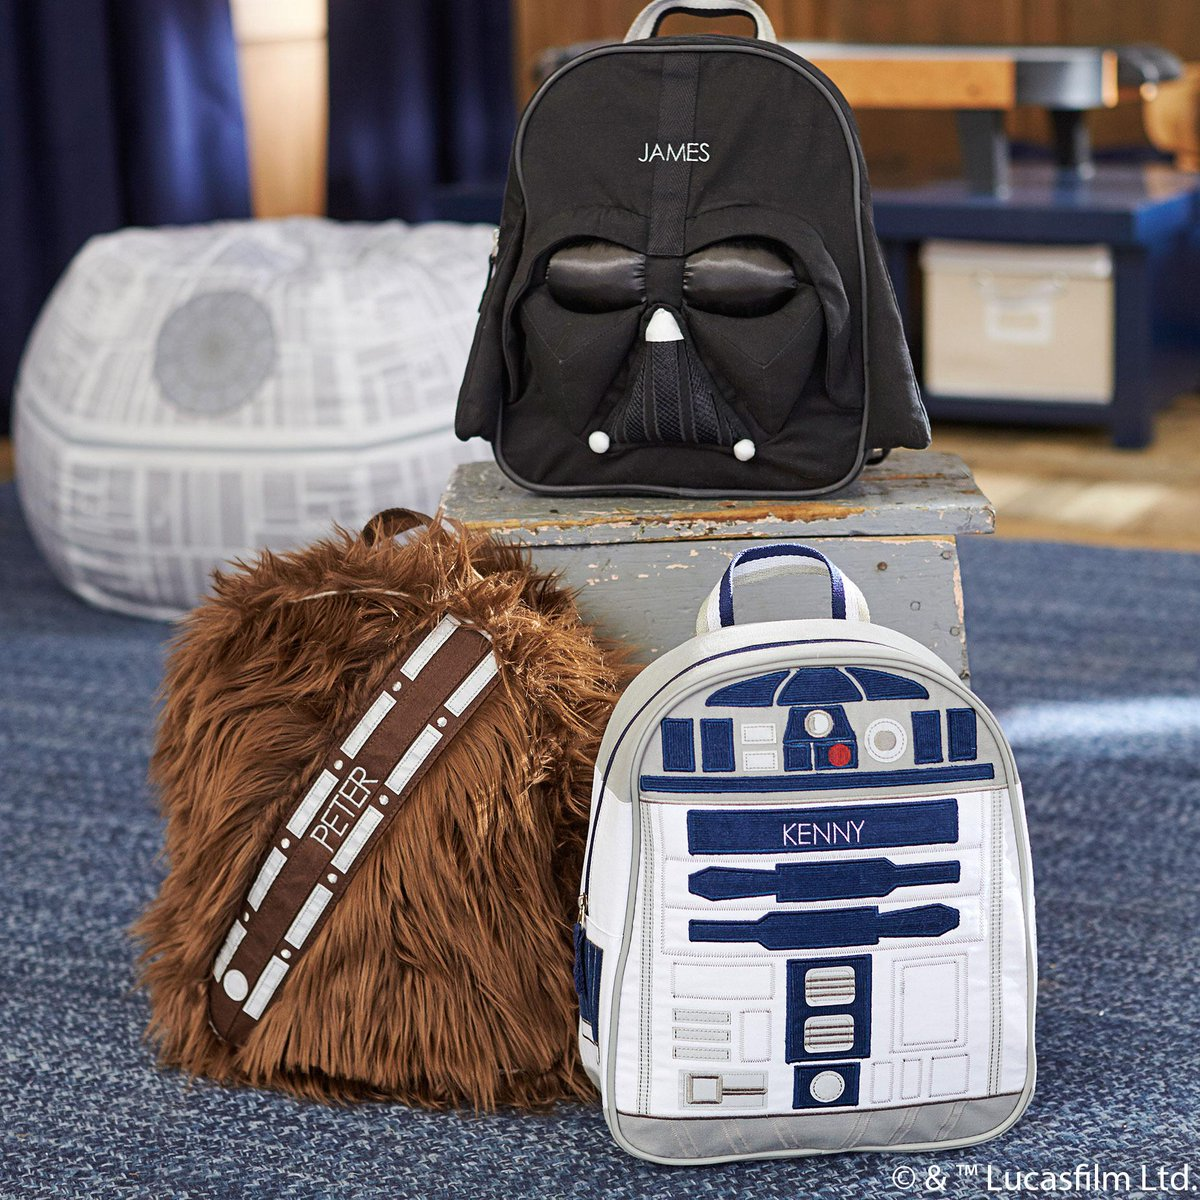 Guess what secret these @StarWars character backpacks are hiding!    http://t.co/SAtXx5APd1 http://t.co/iihscNrRbt